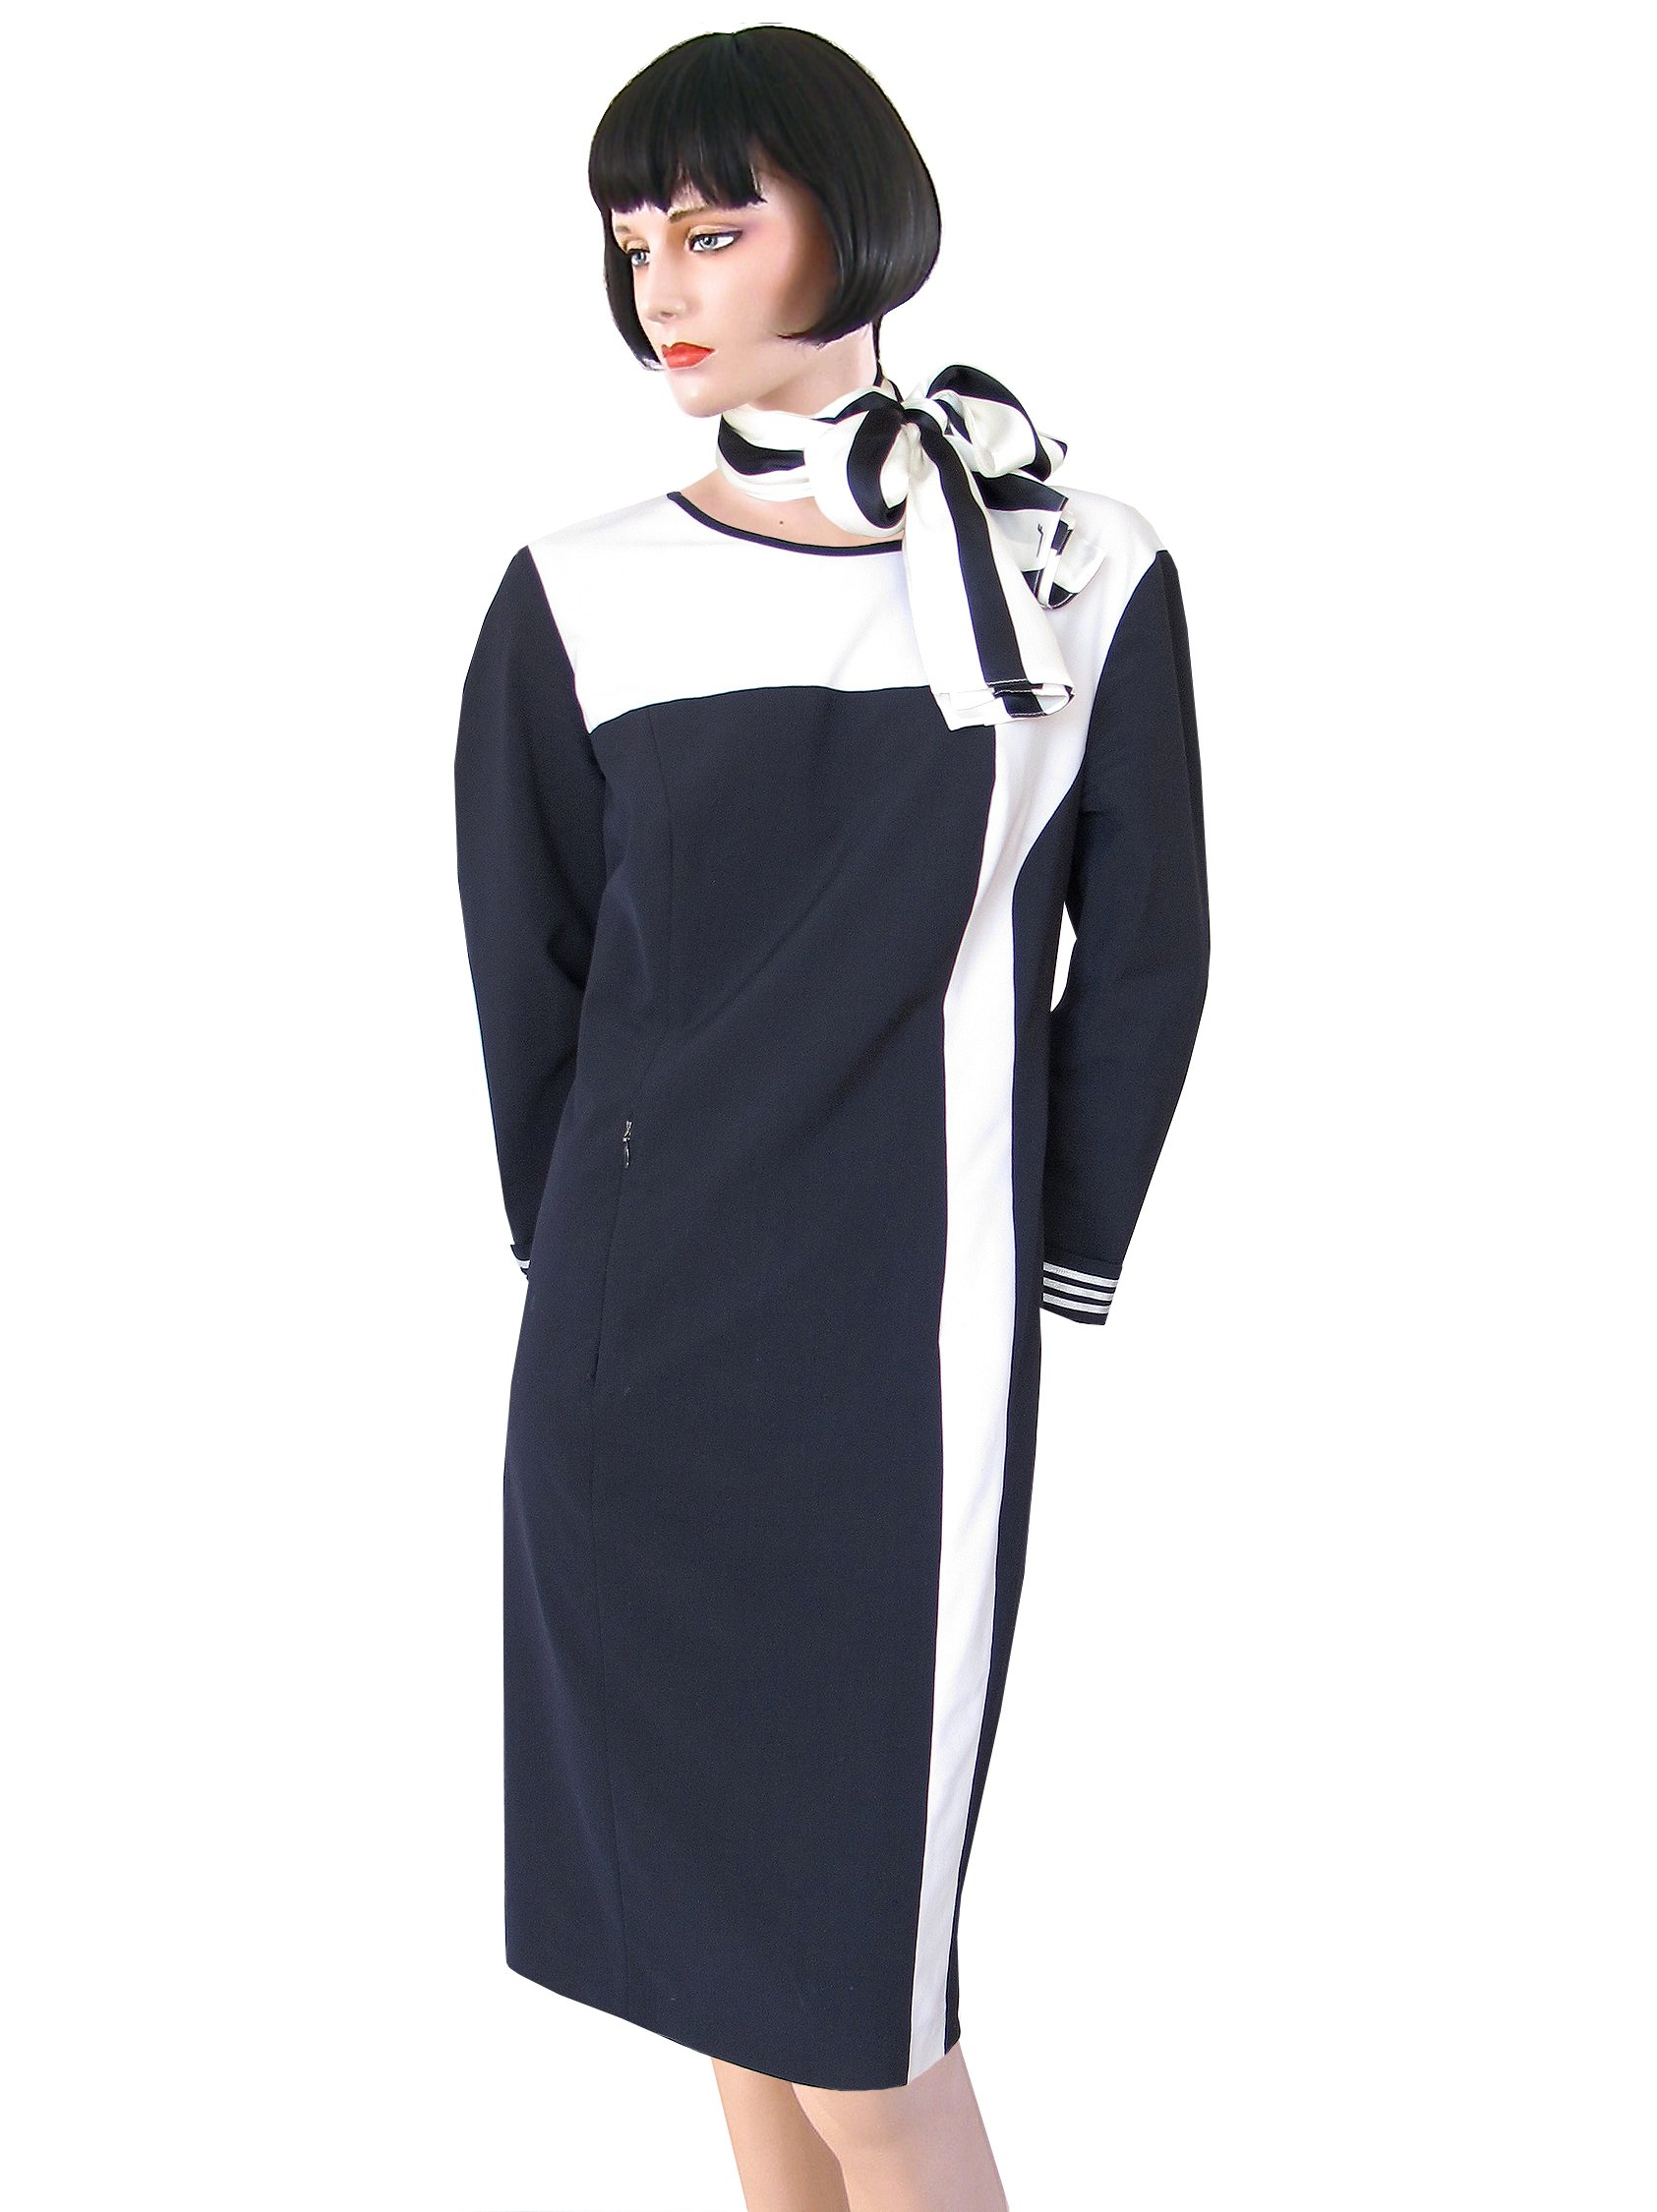 Finnair uniform dress for pursers 2011-2013. Image: Collection Cliff Muskiet